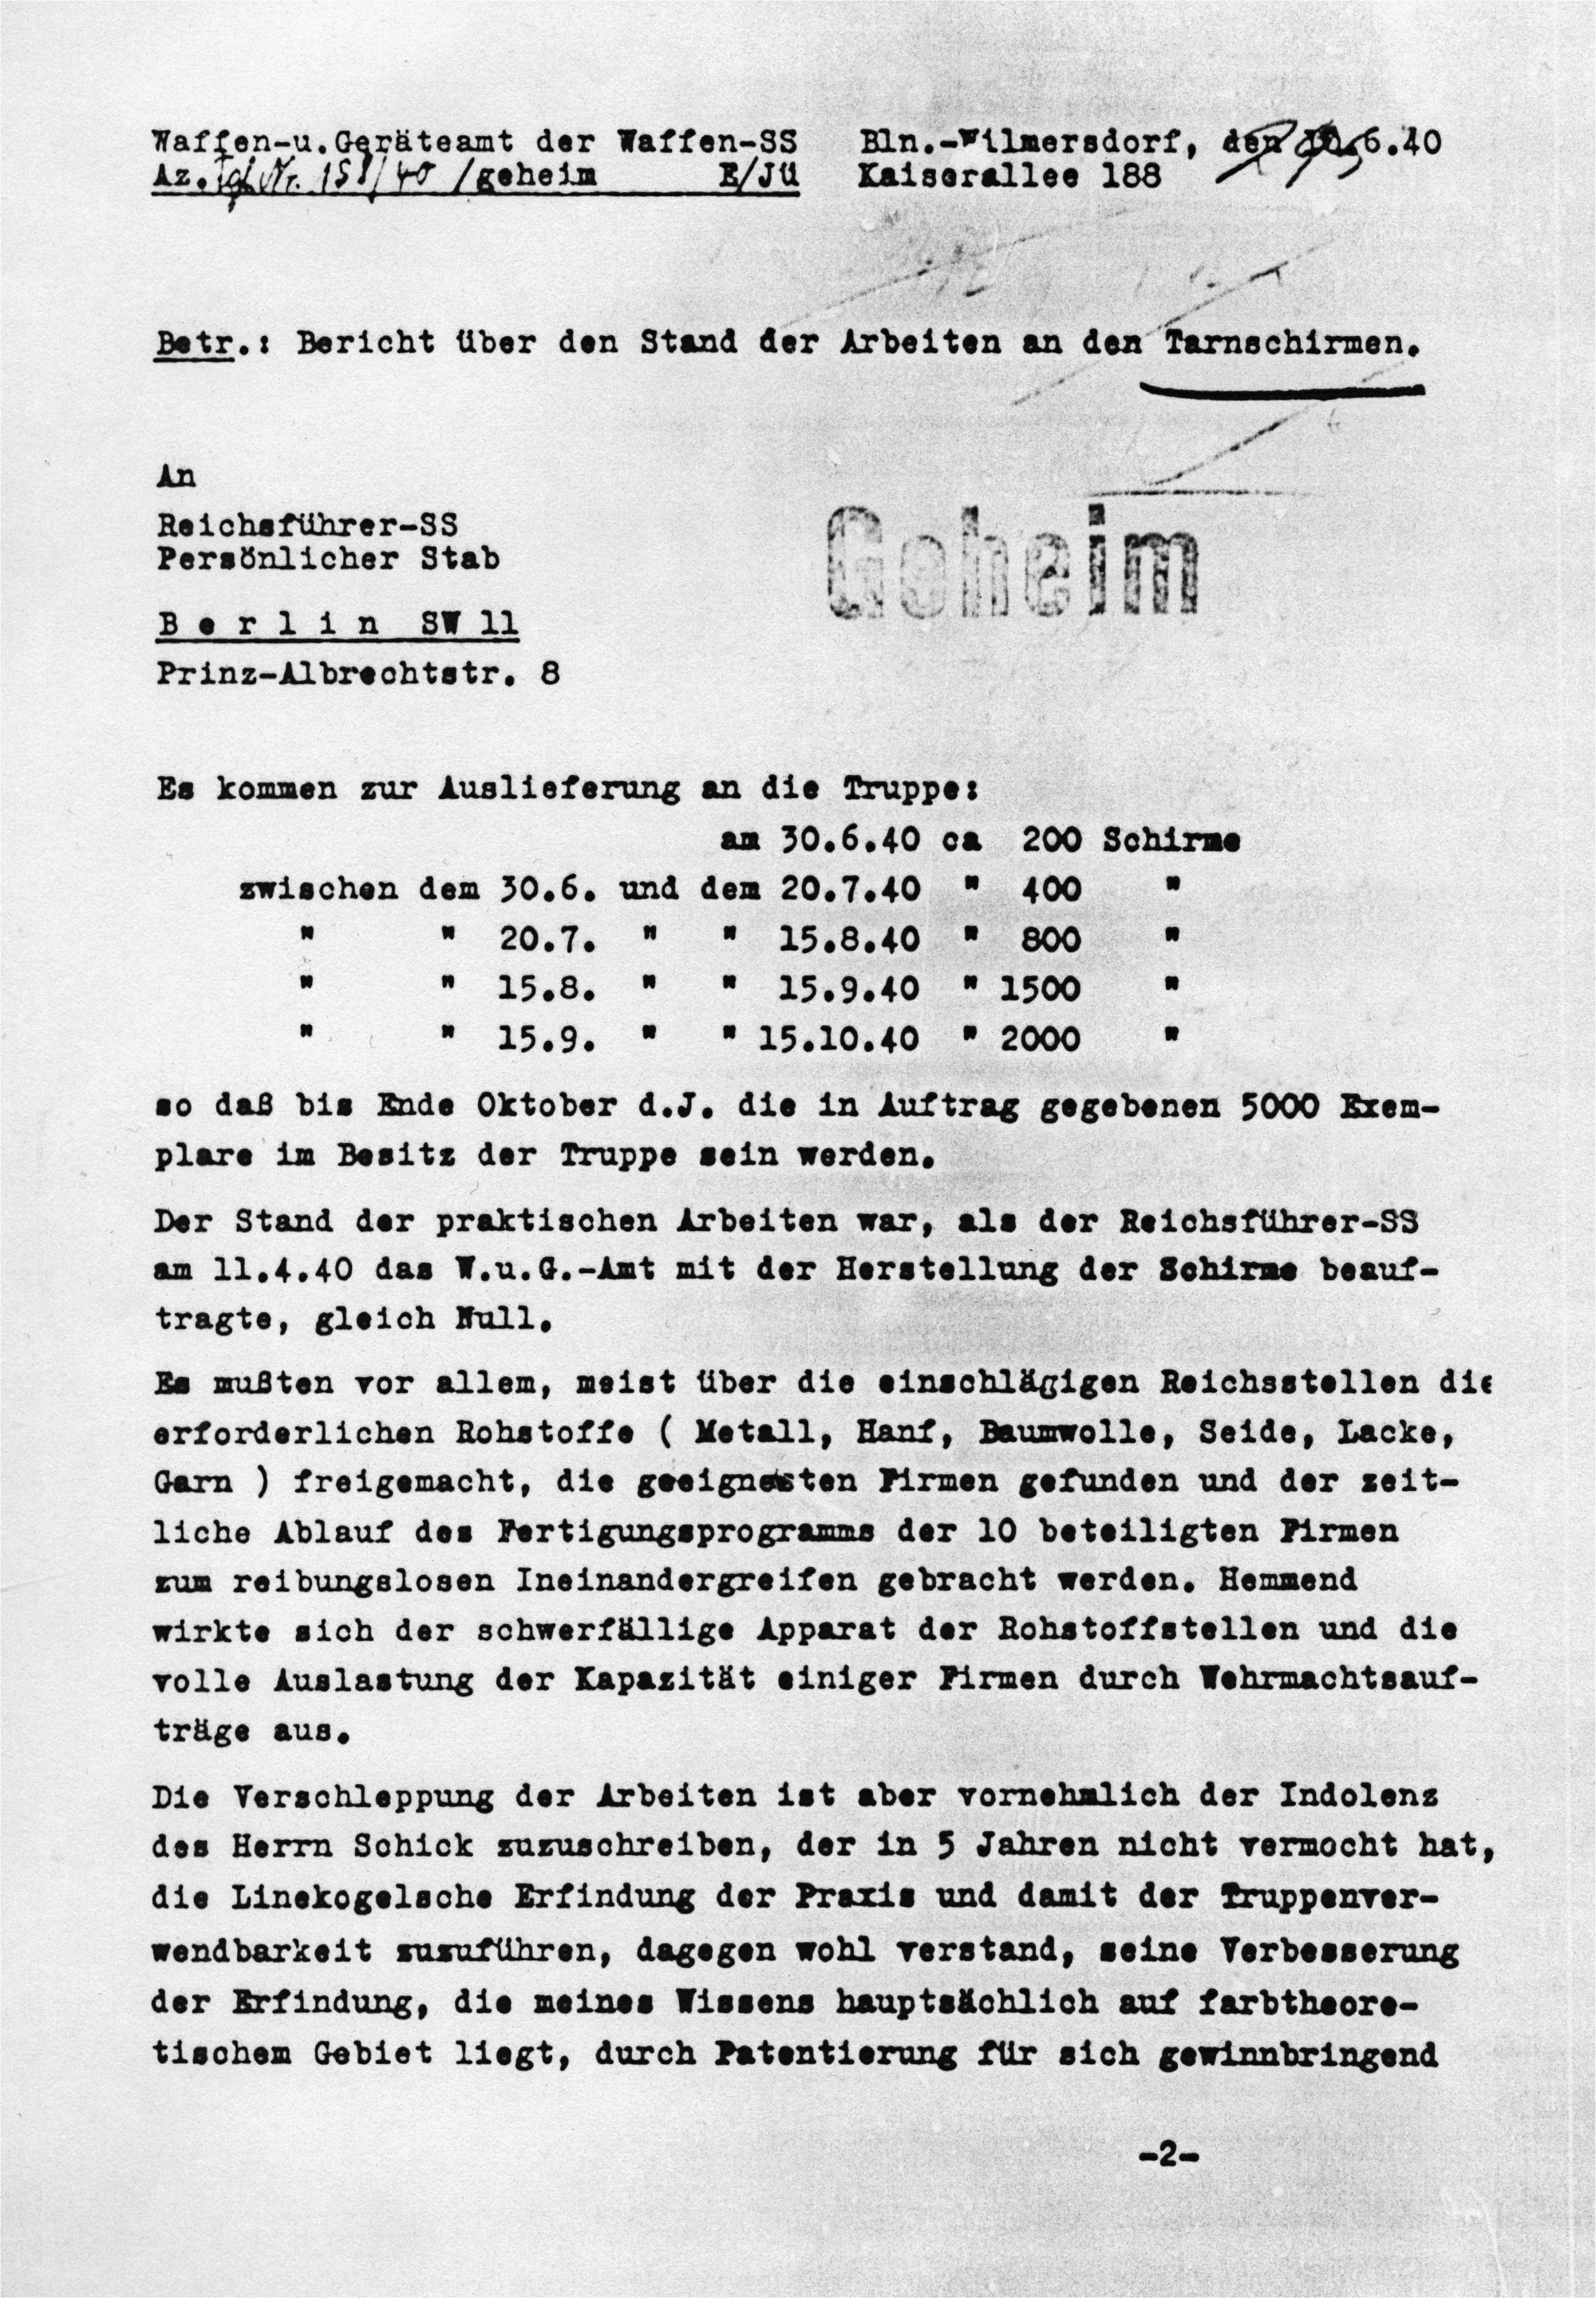 Letter from 10 June 1940 with planned delivery dates and numbers